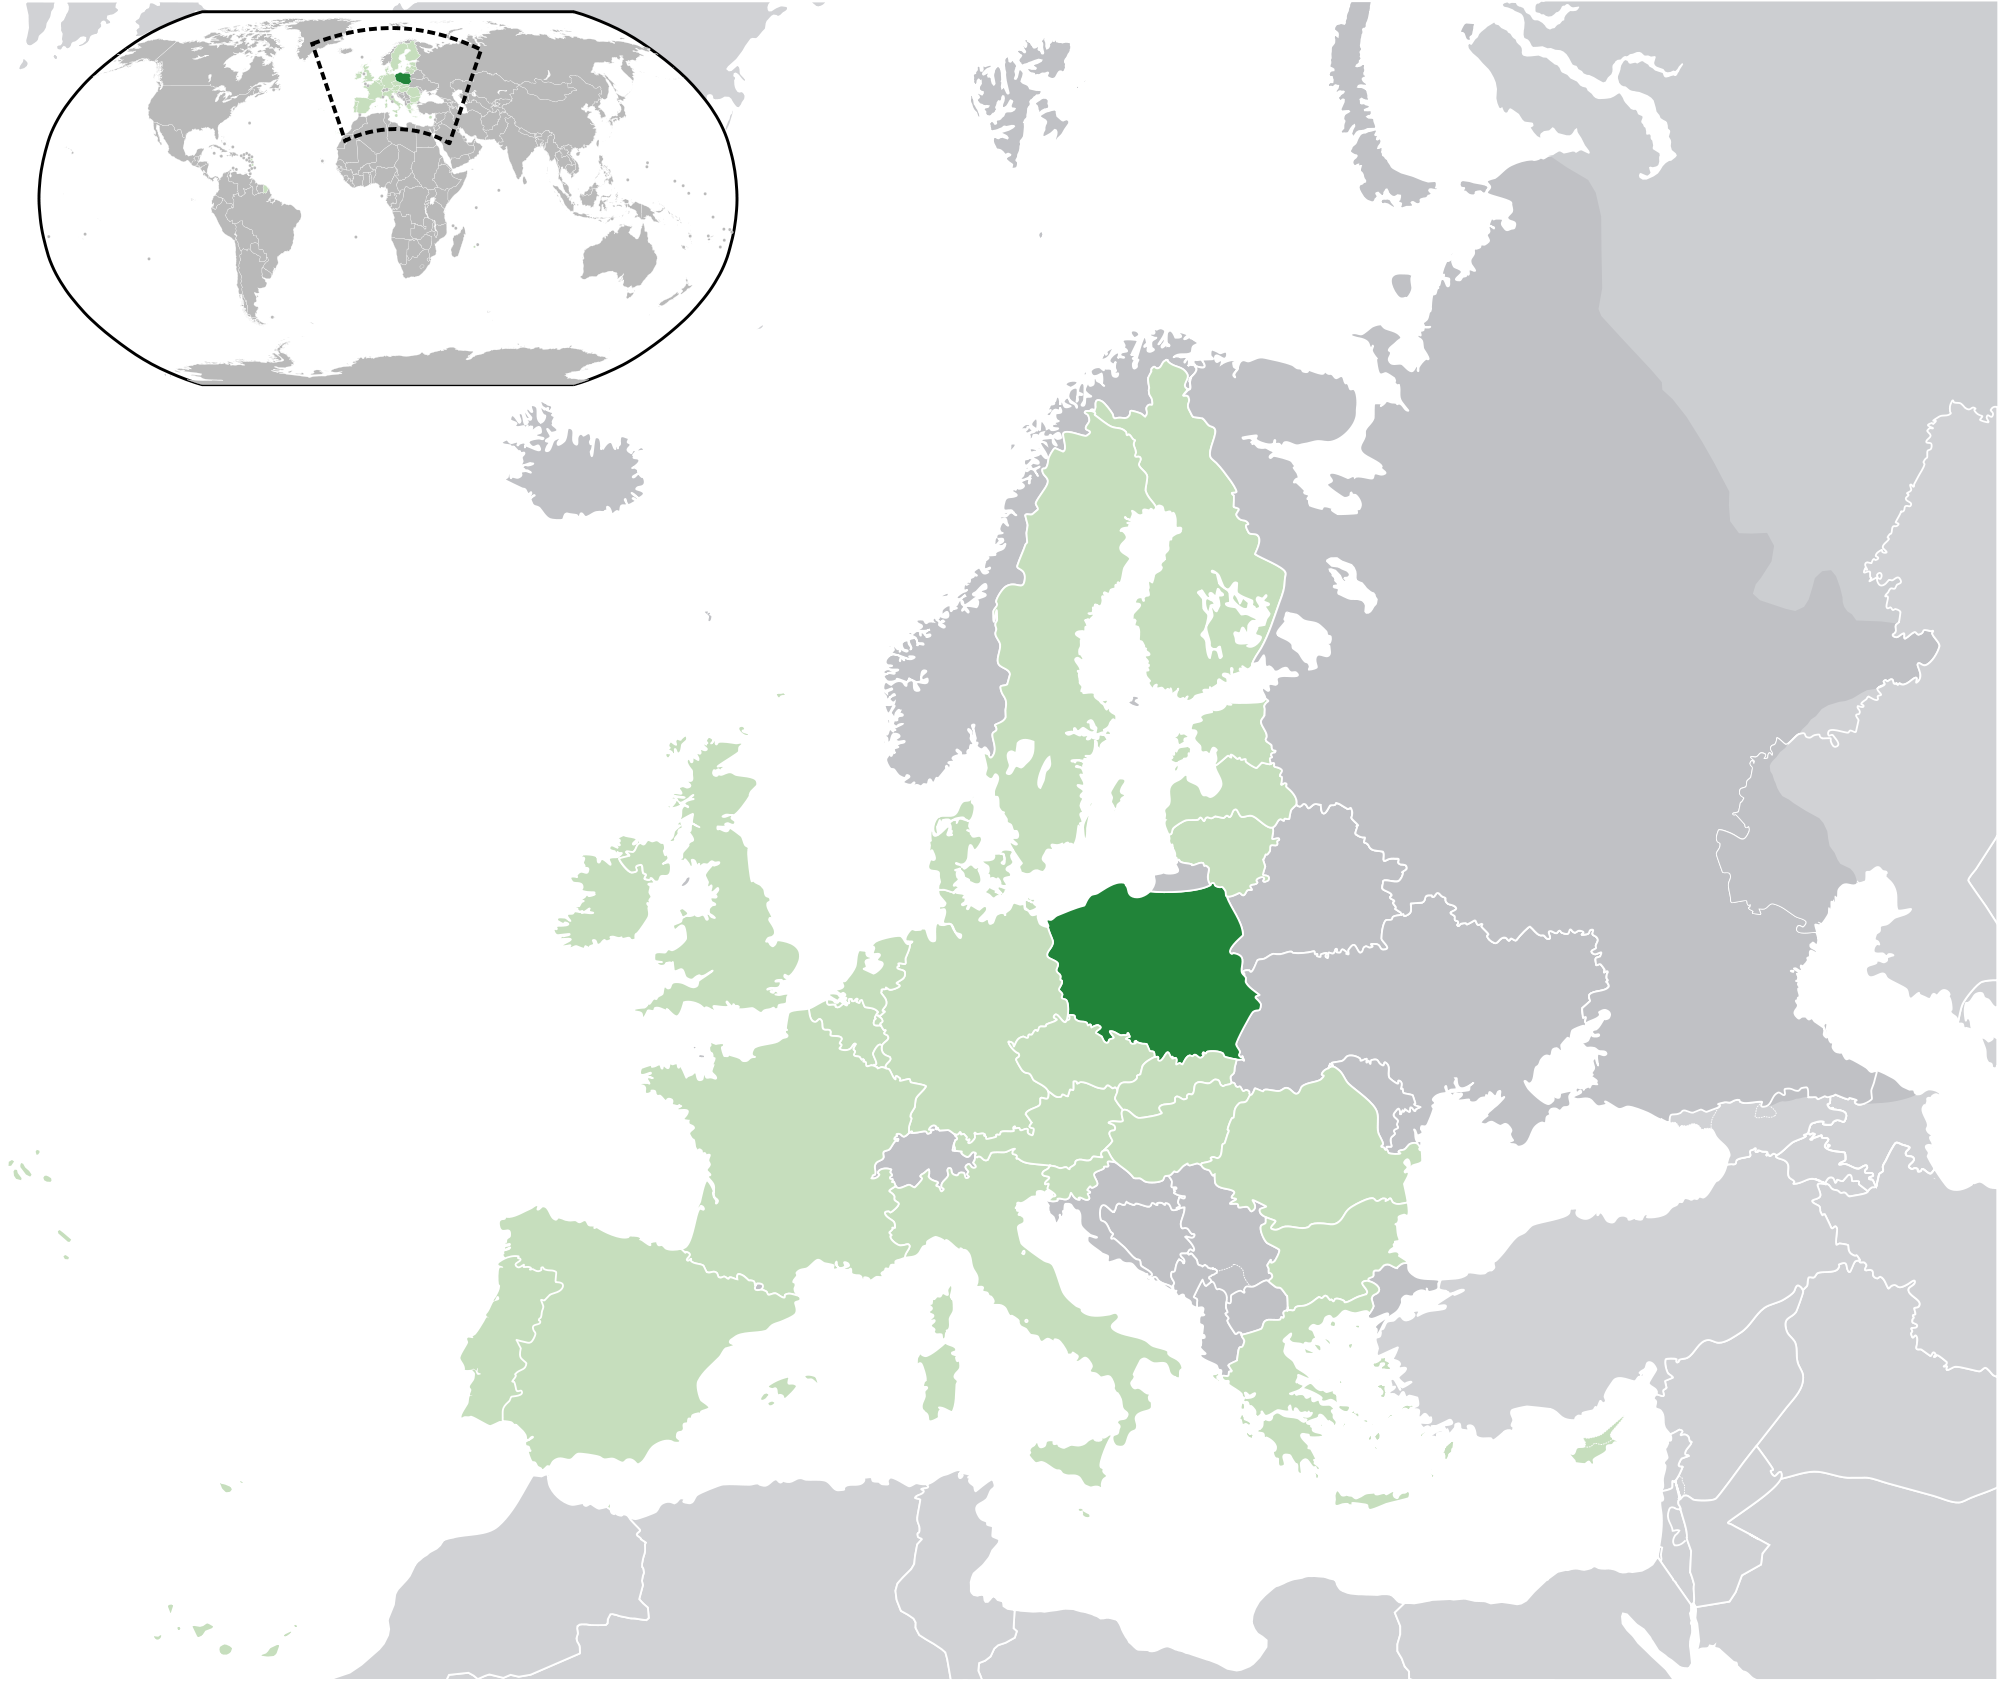 Poland On The World Map.Location Of The Poland In The World Map